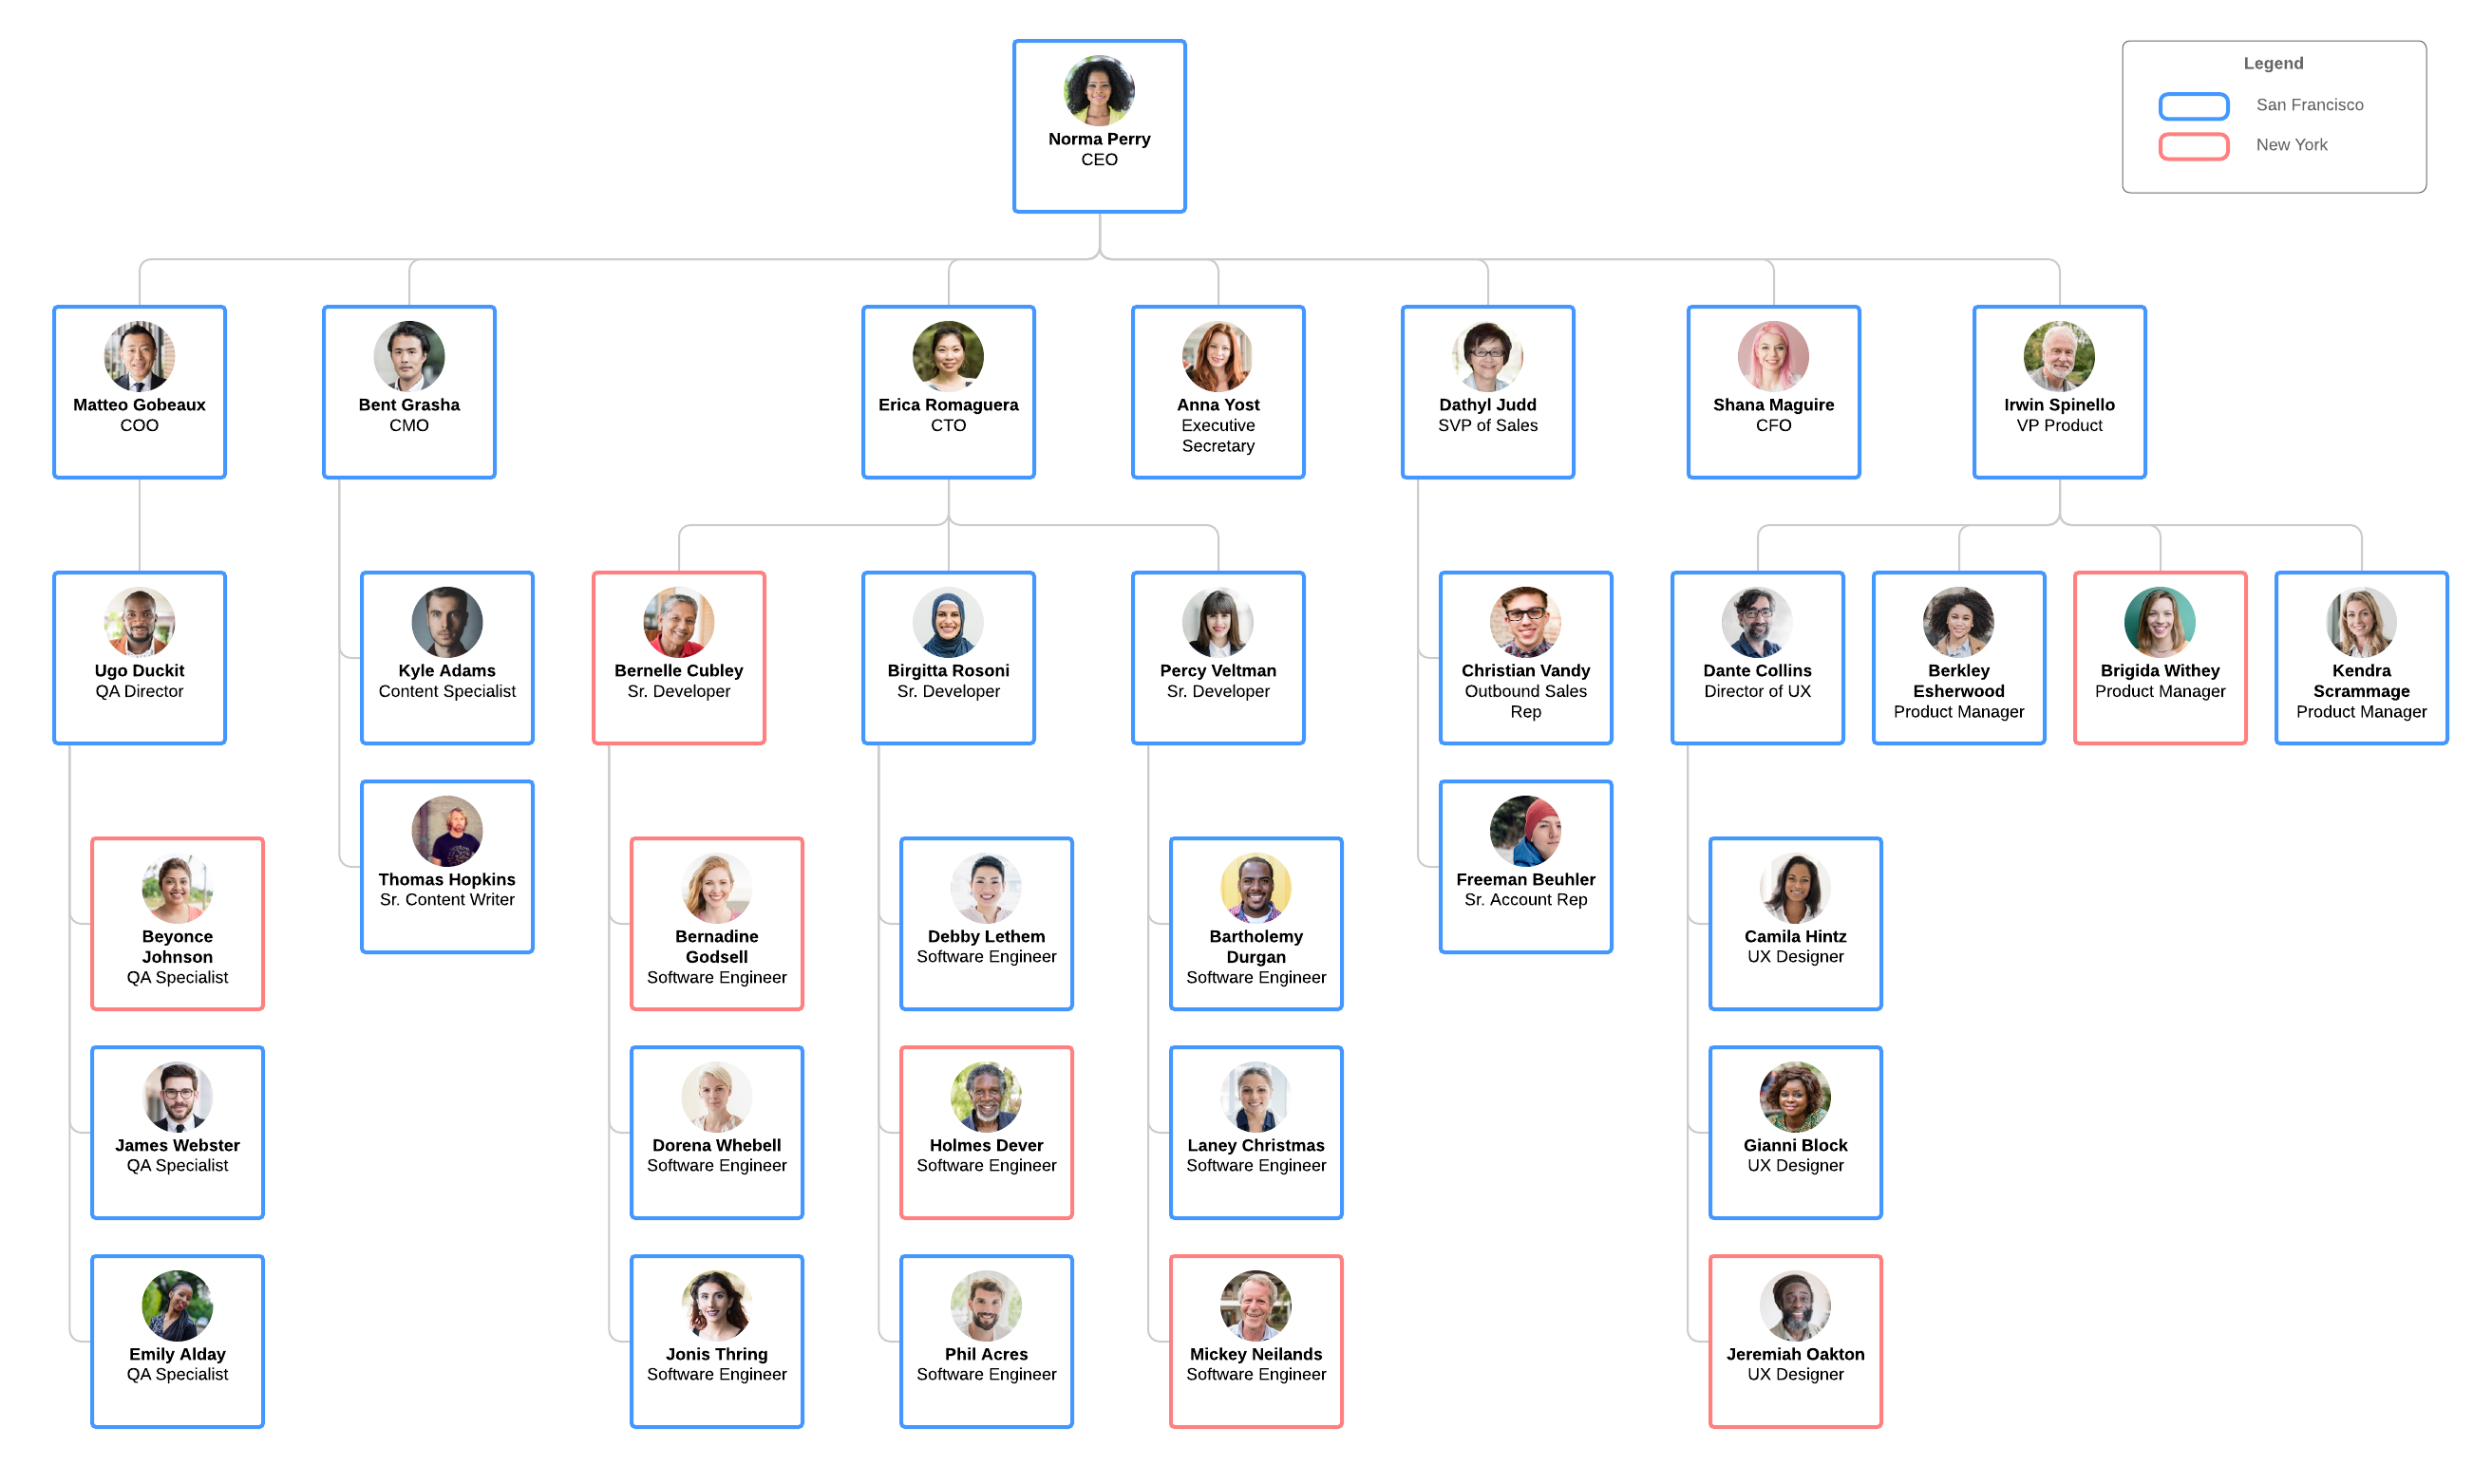 org chart by location